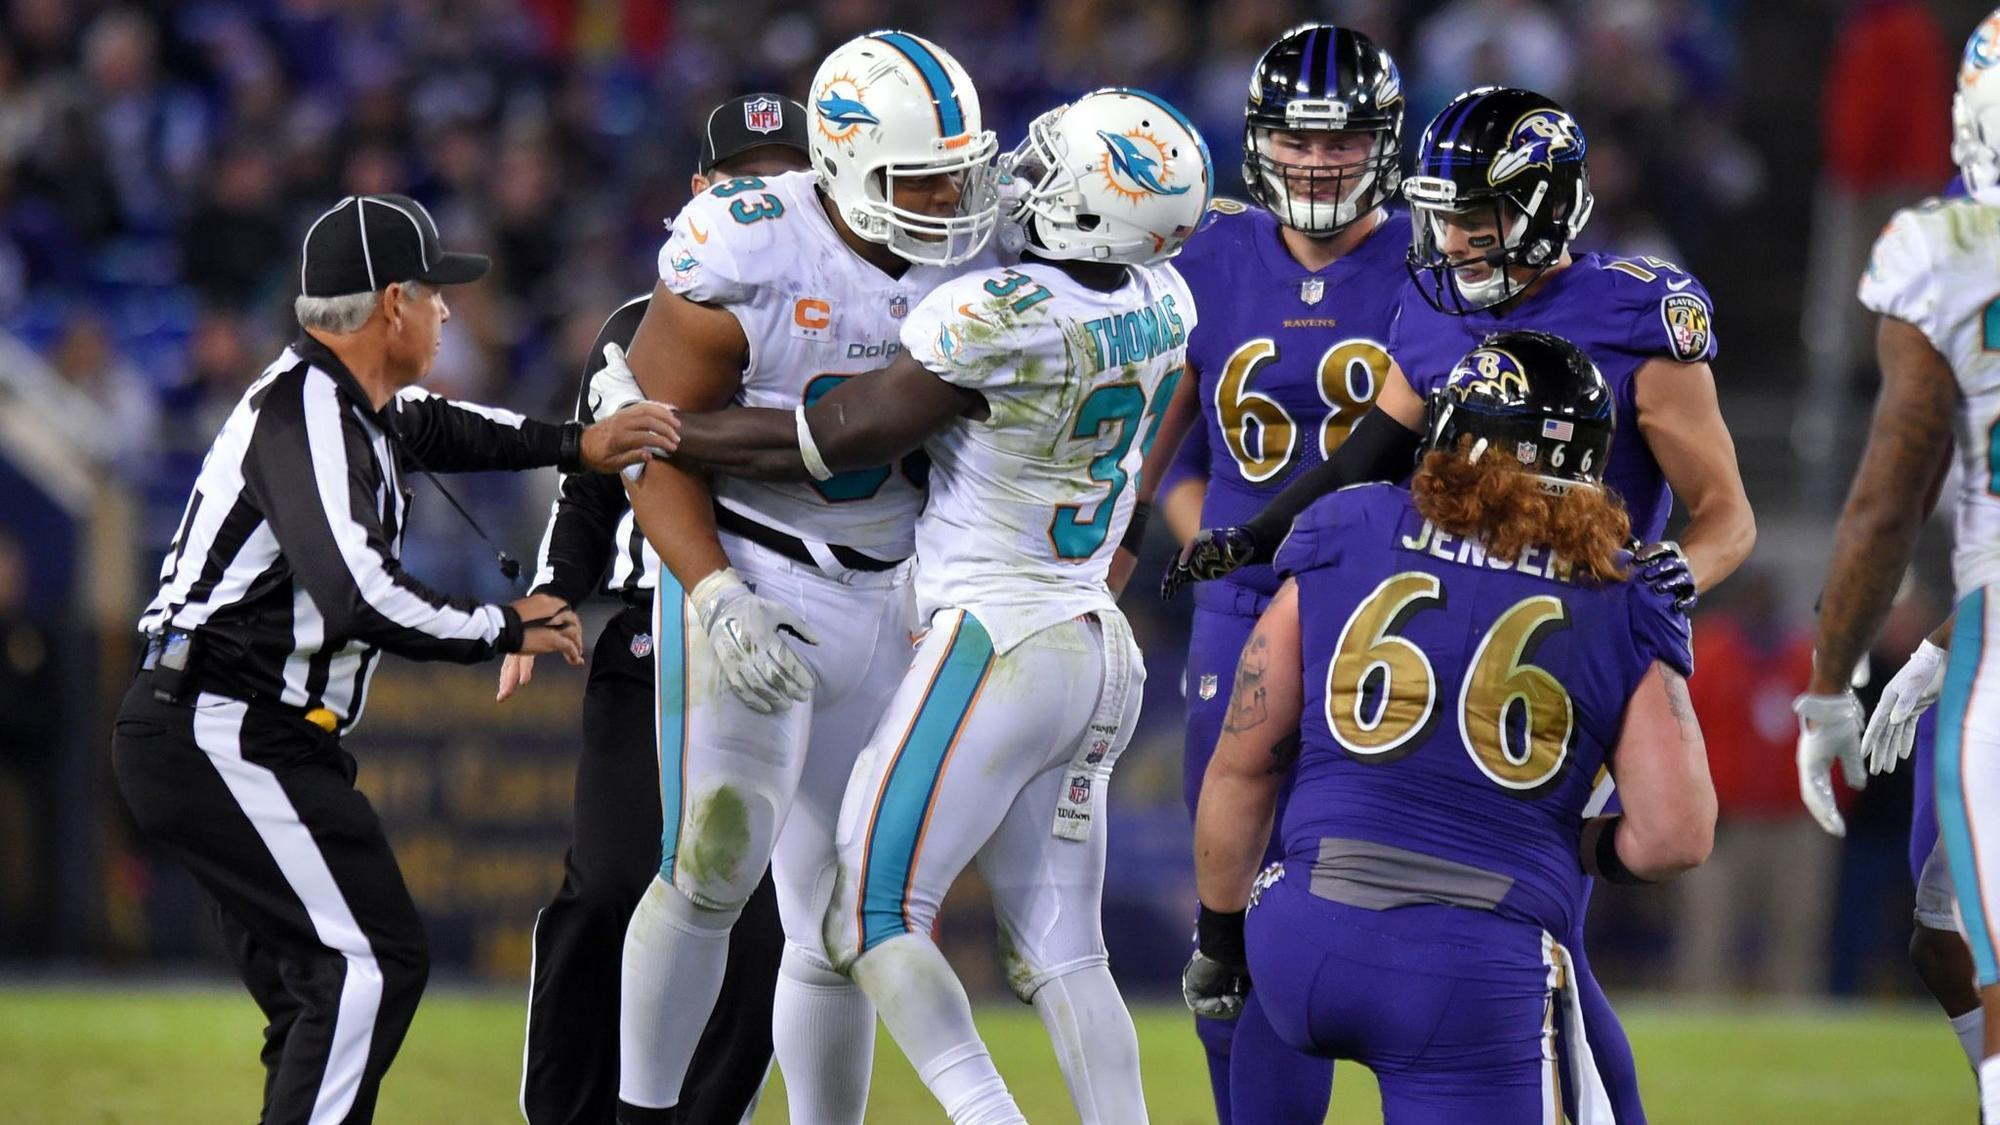 Ryan Mallett on Dolphins Ndamukong Suh He takes the bait pretty